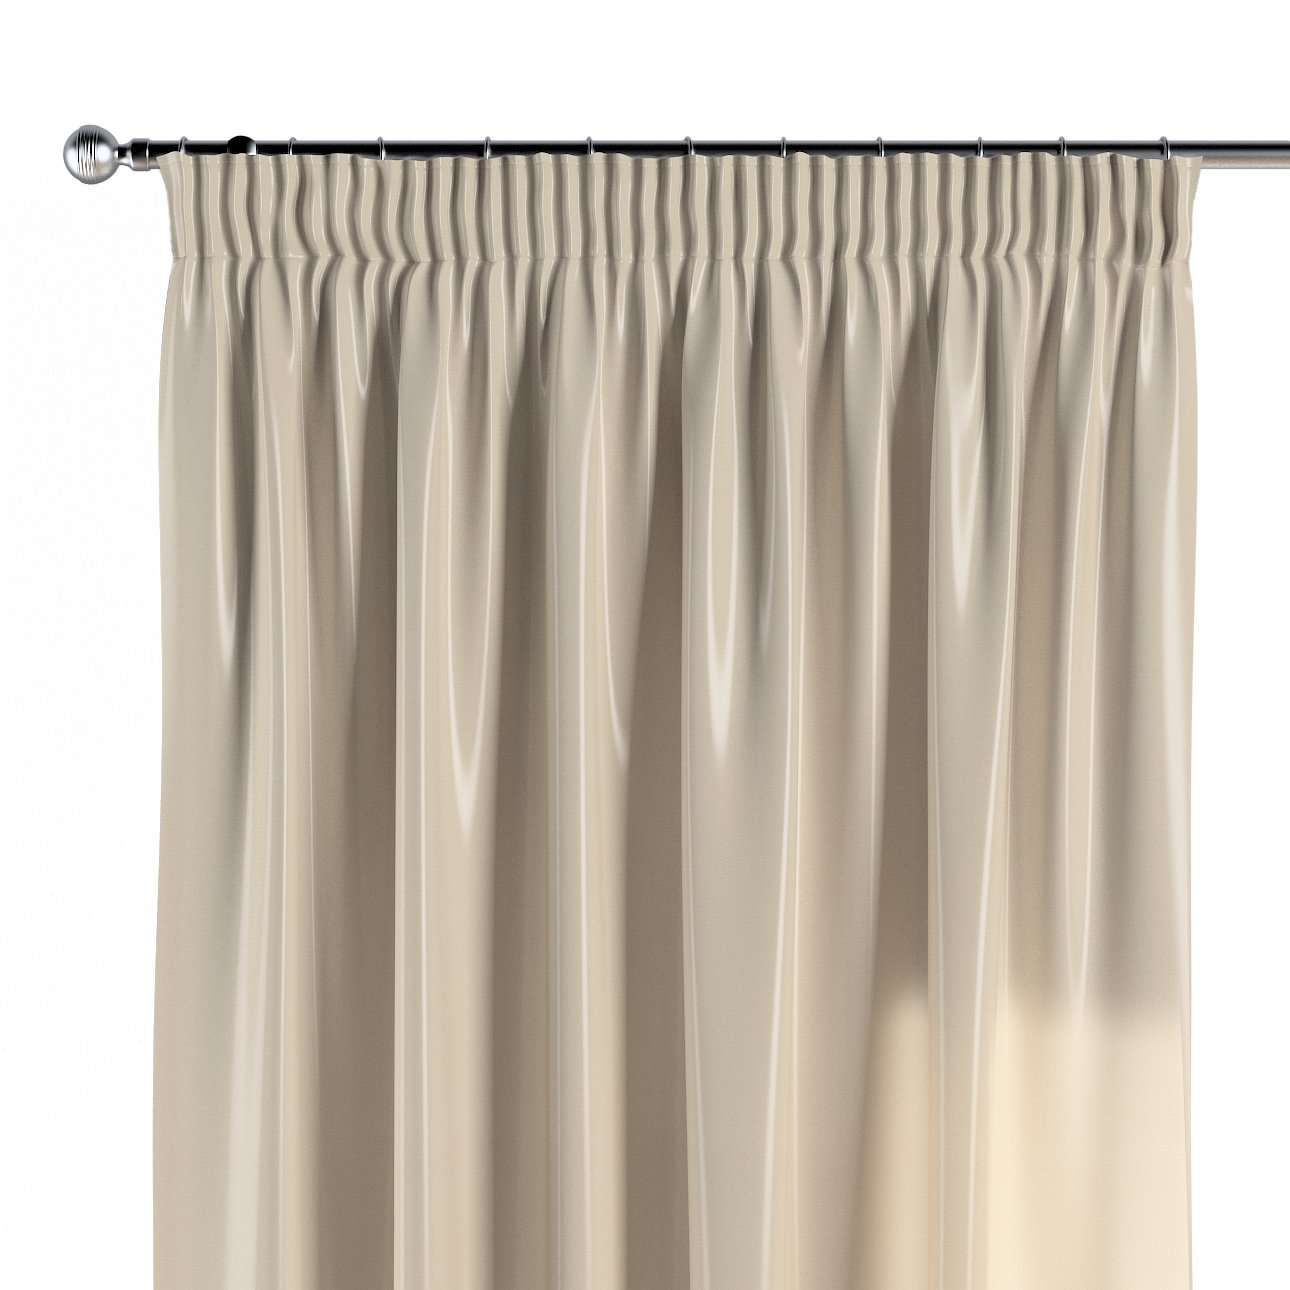 Pencil pleat curtains in collection Christmas, fabric: 141-73